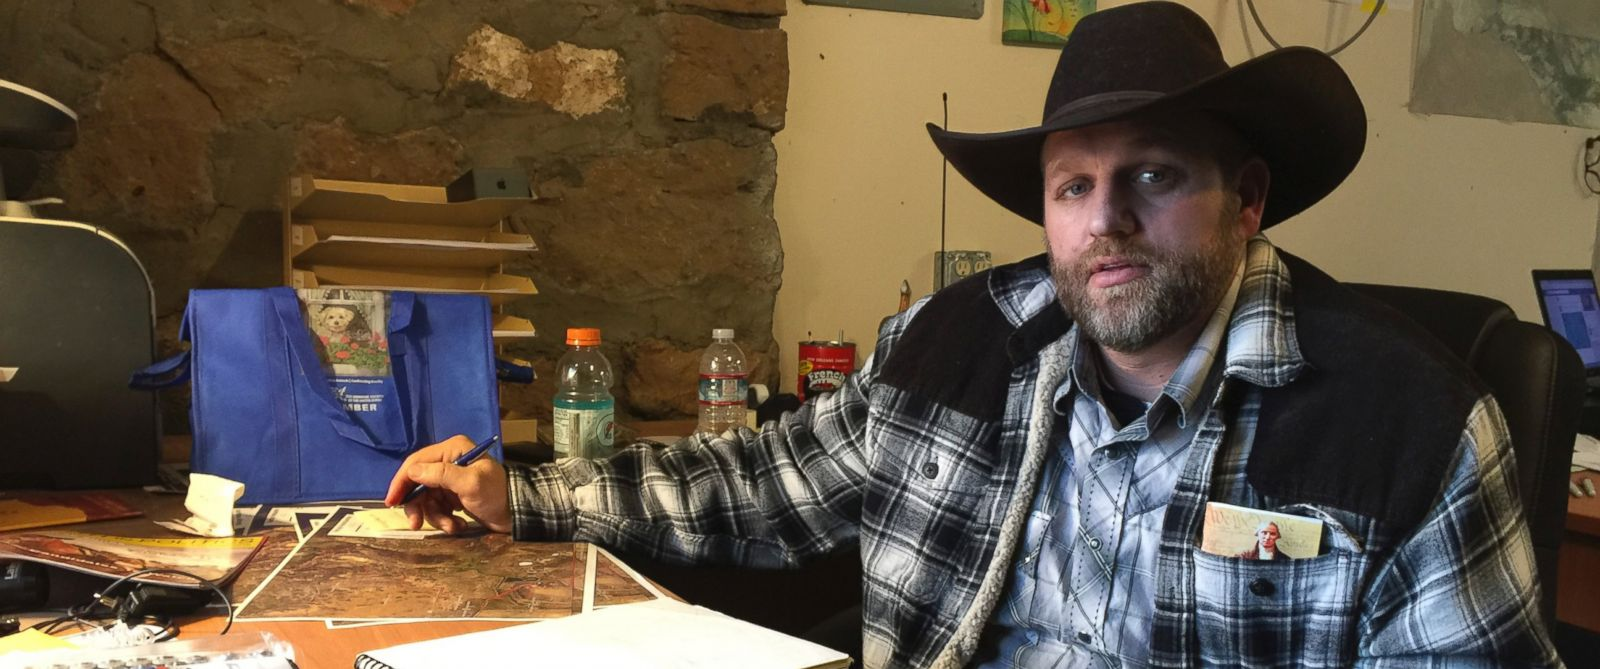 PHOTO: Ammon Bundy sits at a desk hes using at the Malheur National Wildlife Refuge in Oregon, Jan. 22, 2016. Bundy is the leader of an armed group occupying a national wildlife refuge to protest federal land policies.